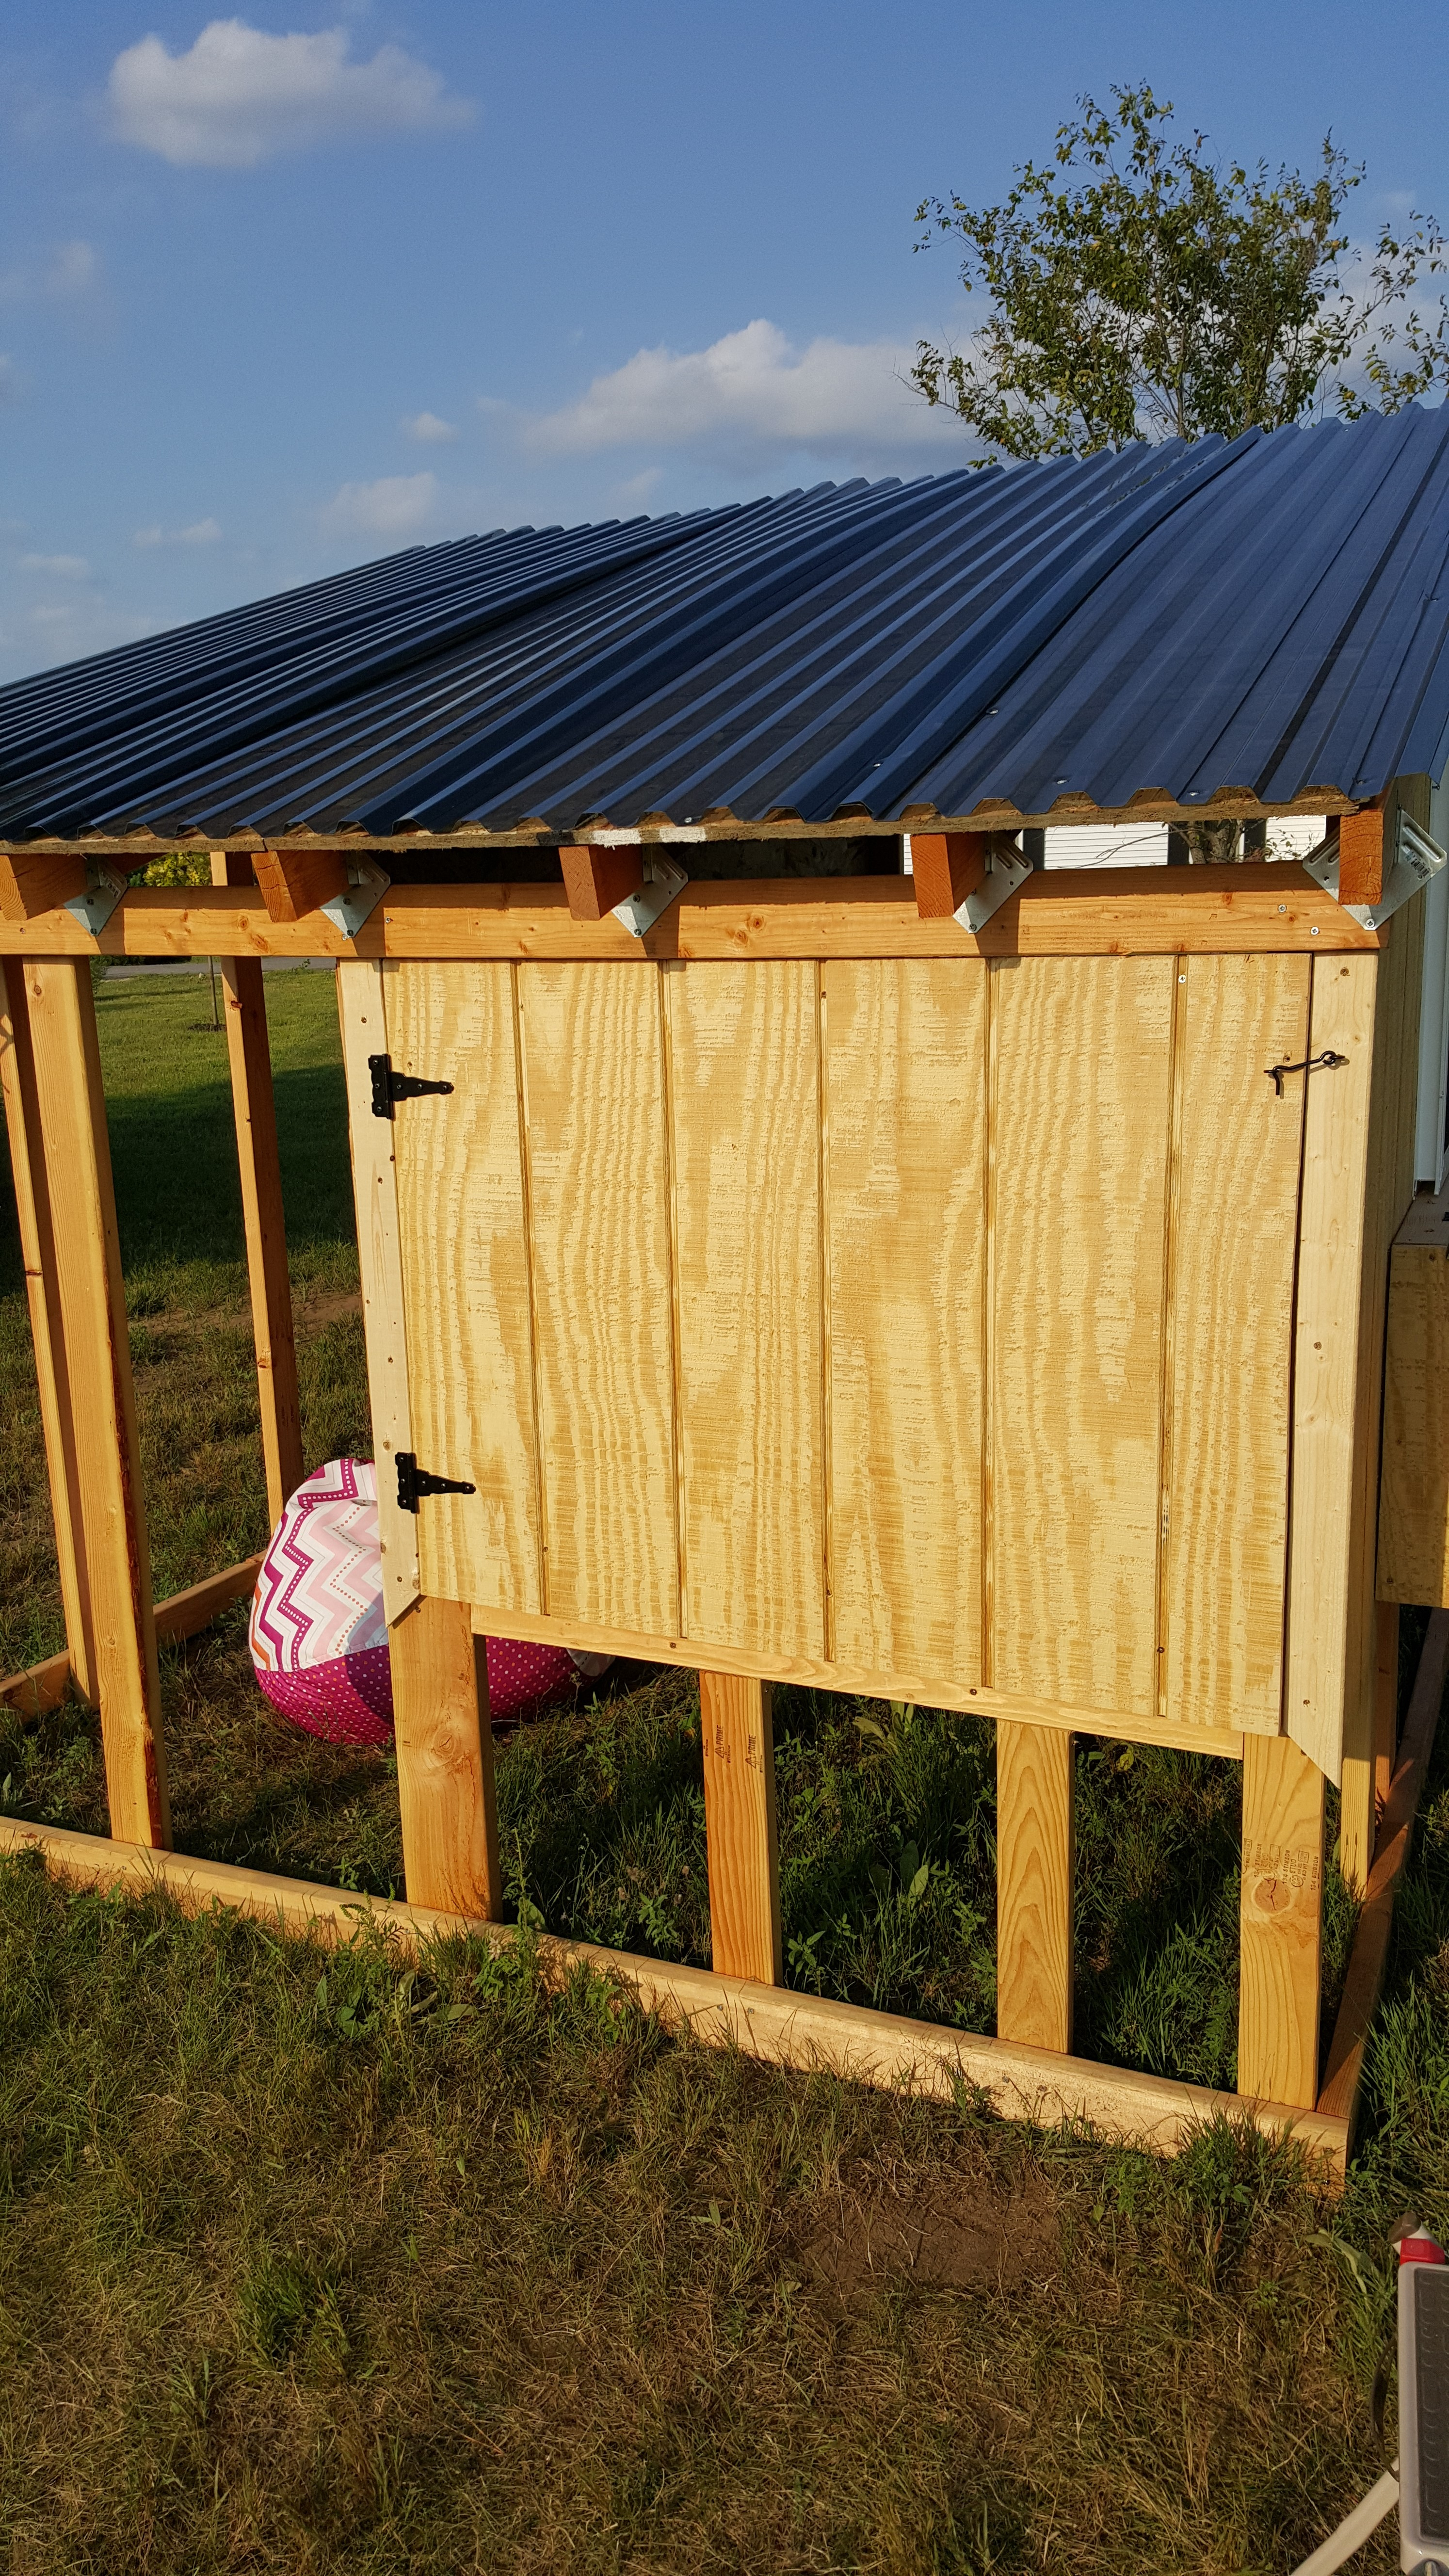 Pictures of amateur built chicken coops